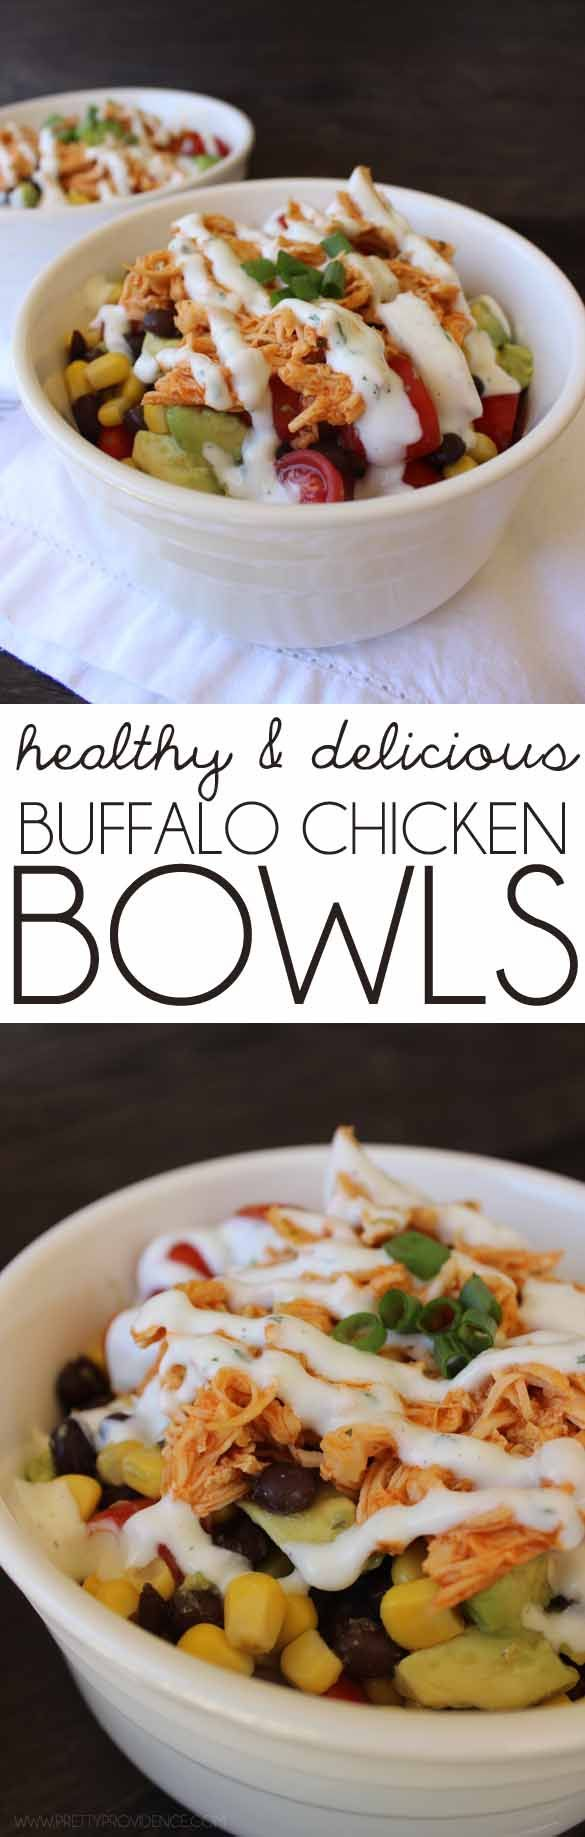 Buffalo chicken bowls with greek yogurt dressing. Sponsored by Hidden Valley. #ad #rancheverything #hiddenvalley